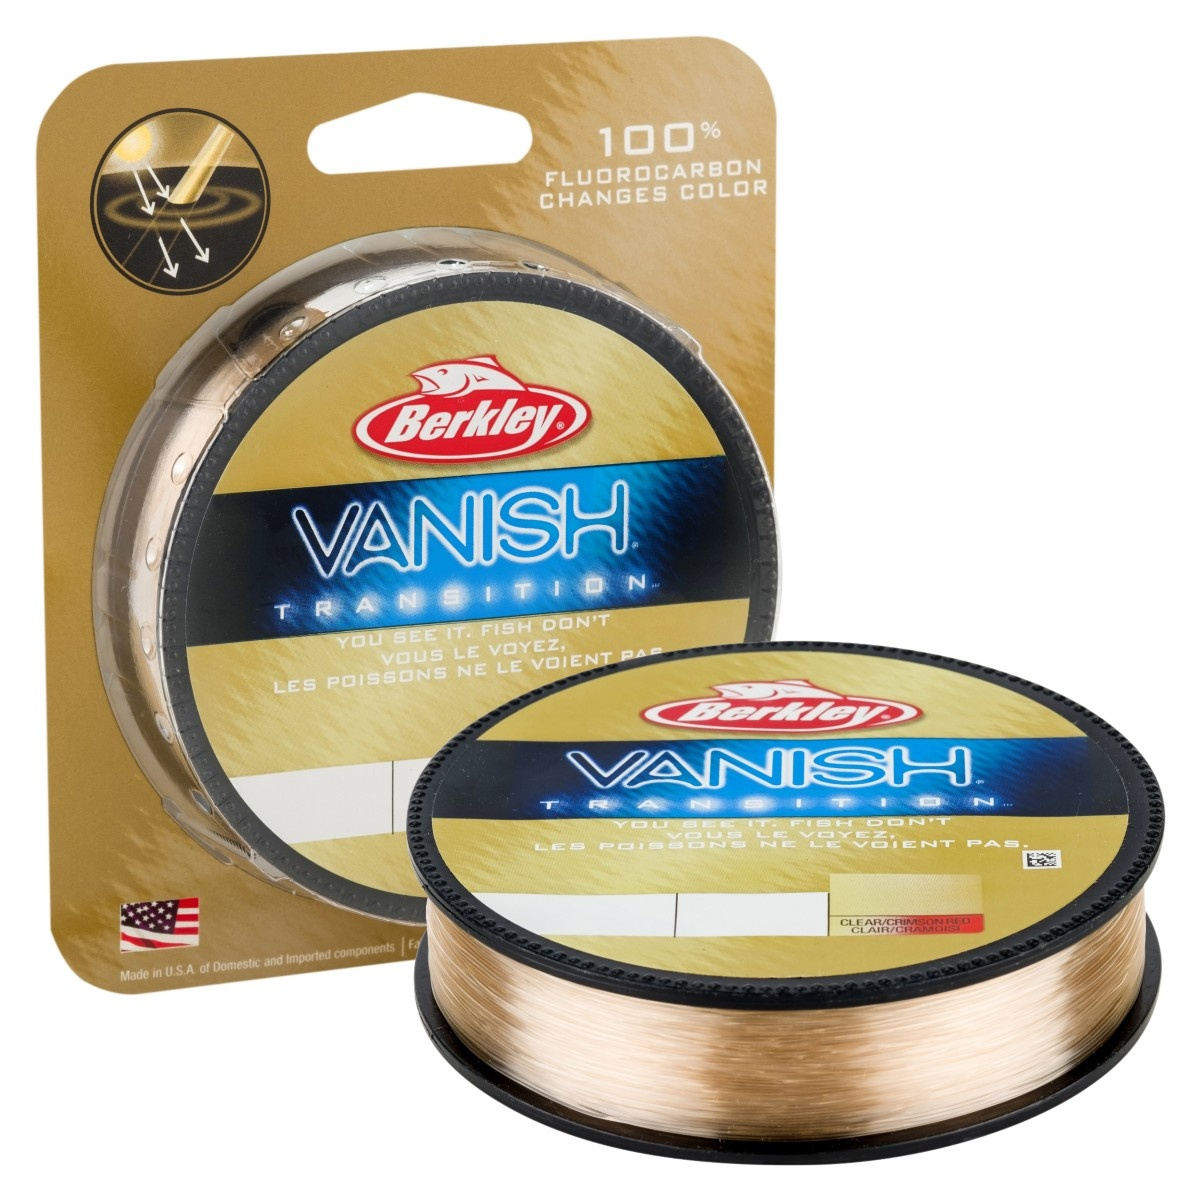 Berkley Berkley Vanish Transition Fluorocarbon